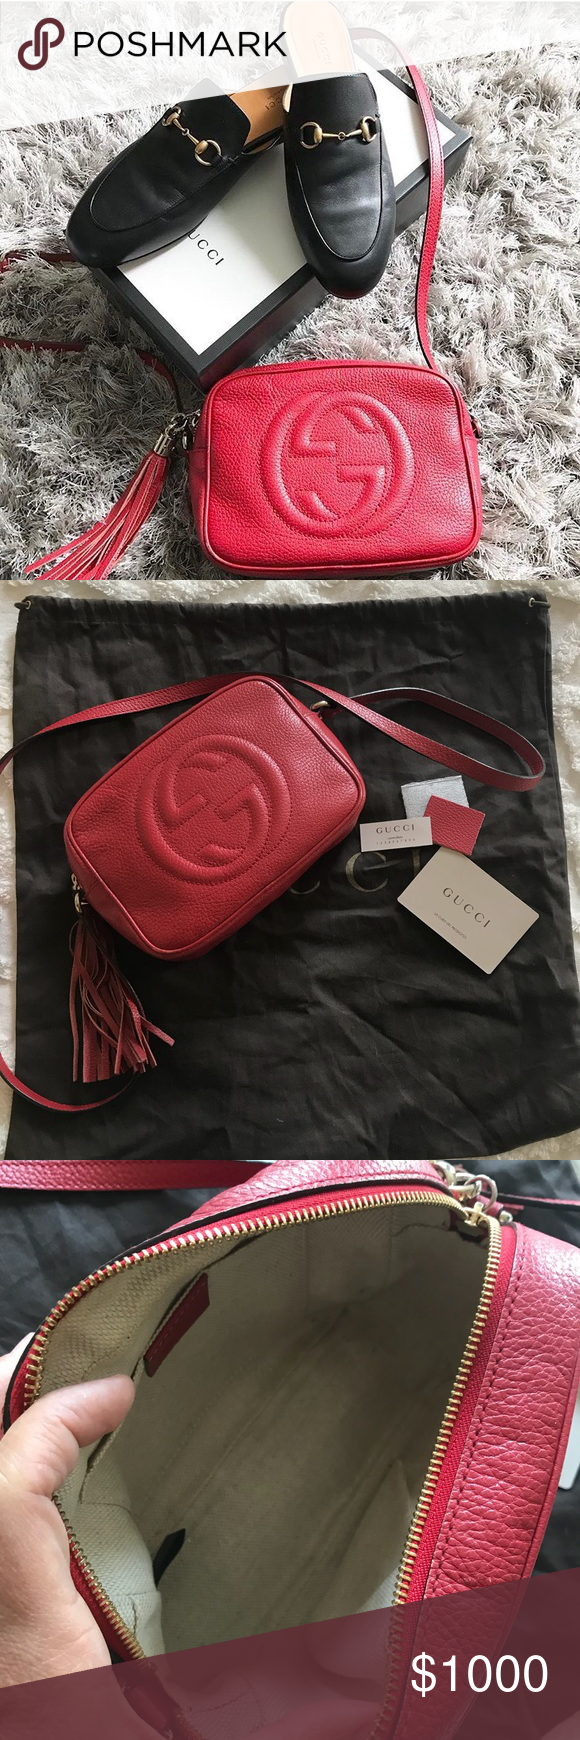 7beb628fee6e Gucci Soho Disco Bag 100% authentic. I had the bag for about 3 yrs.  Excellent condition. No trades. Gucci Bags Crossbody Bags